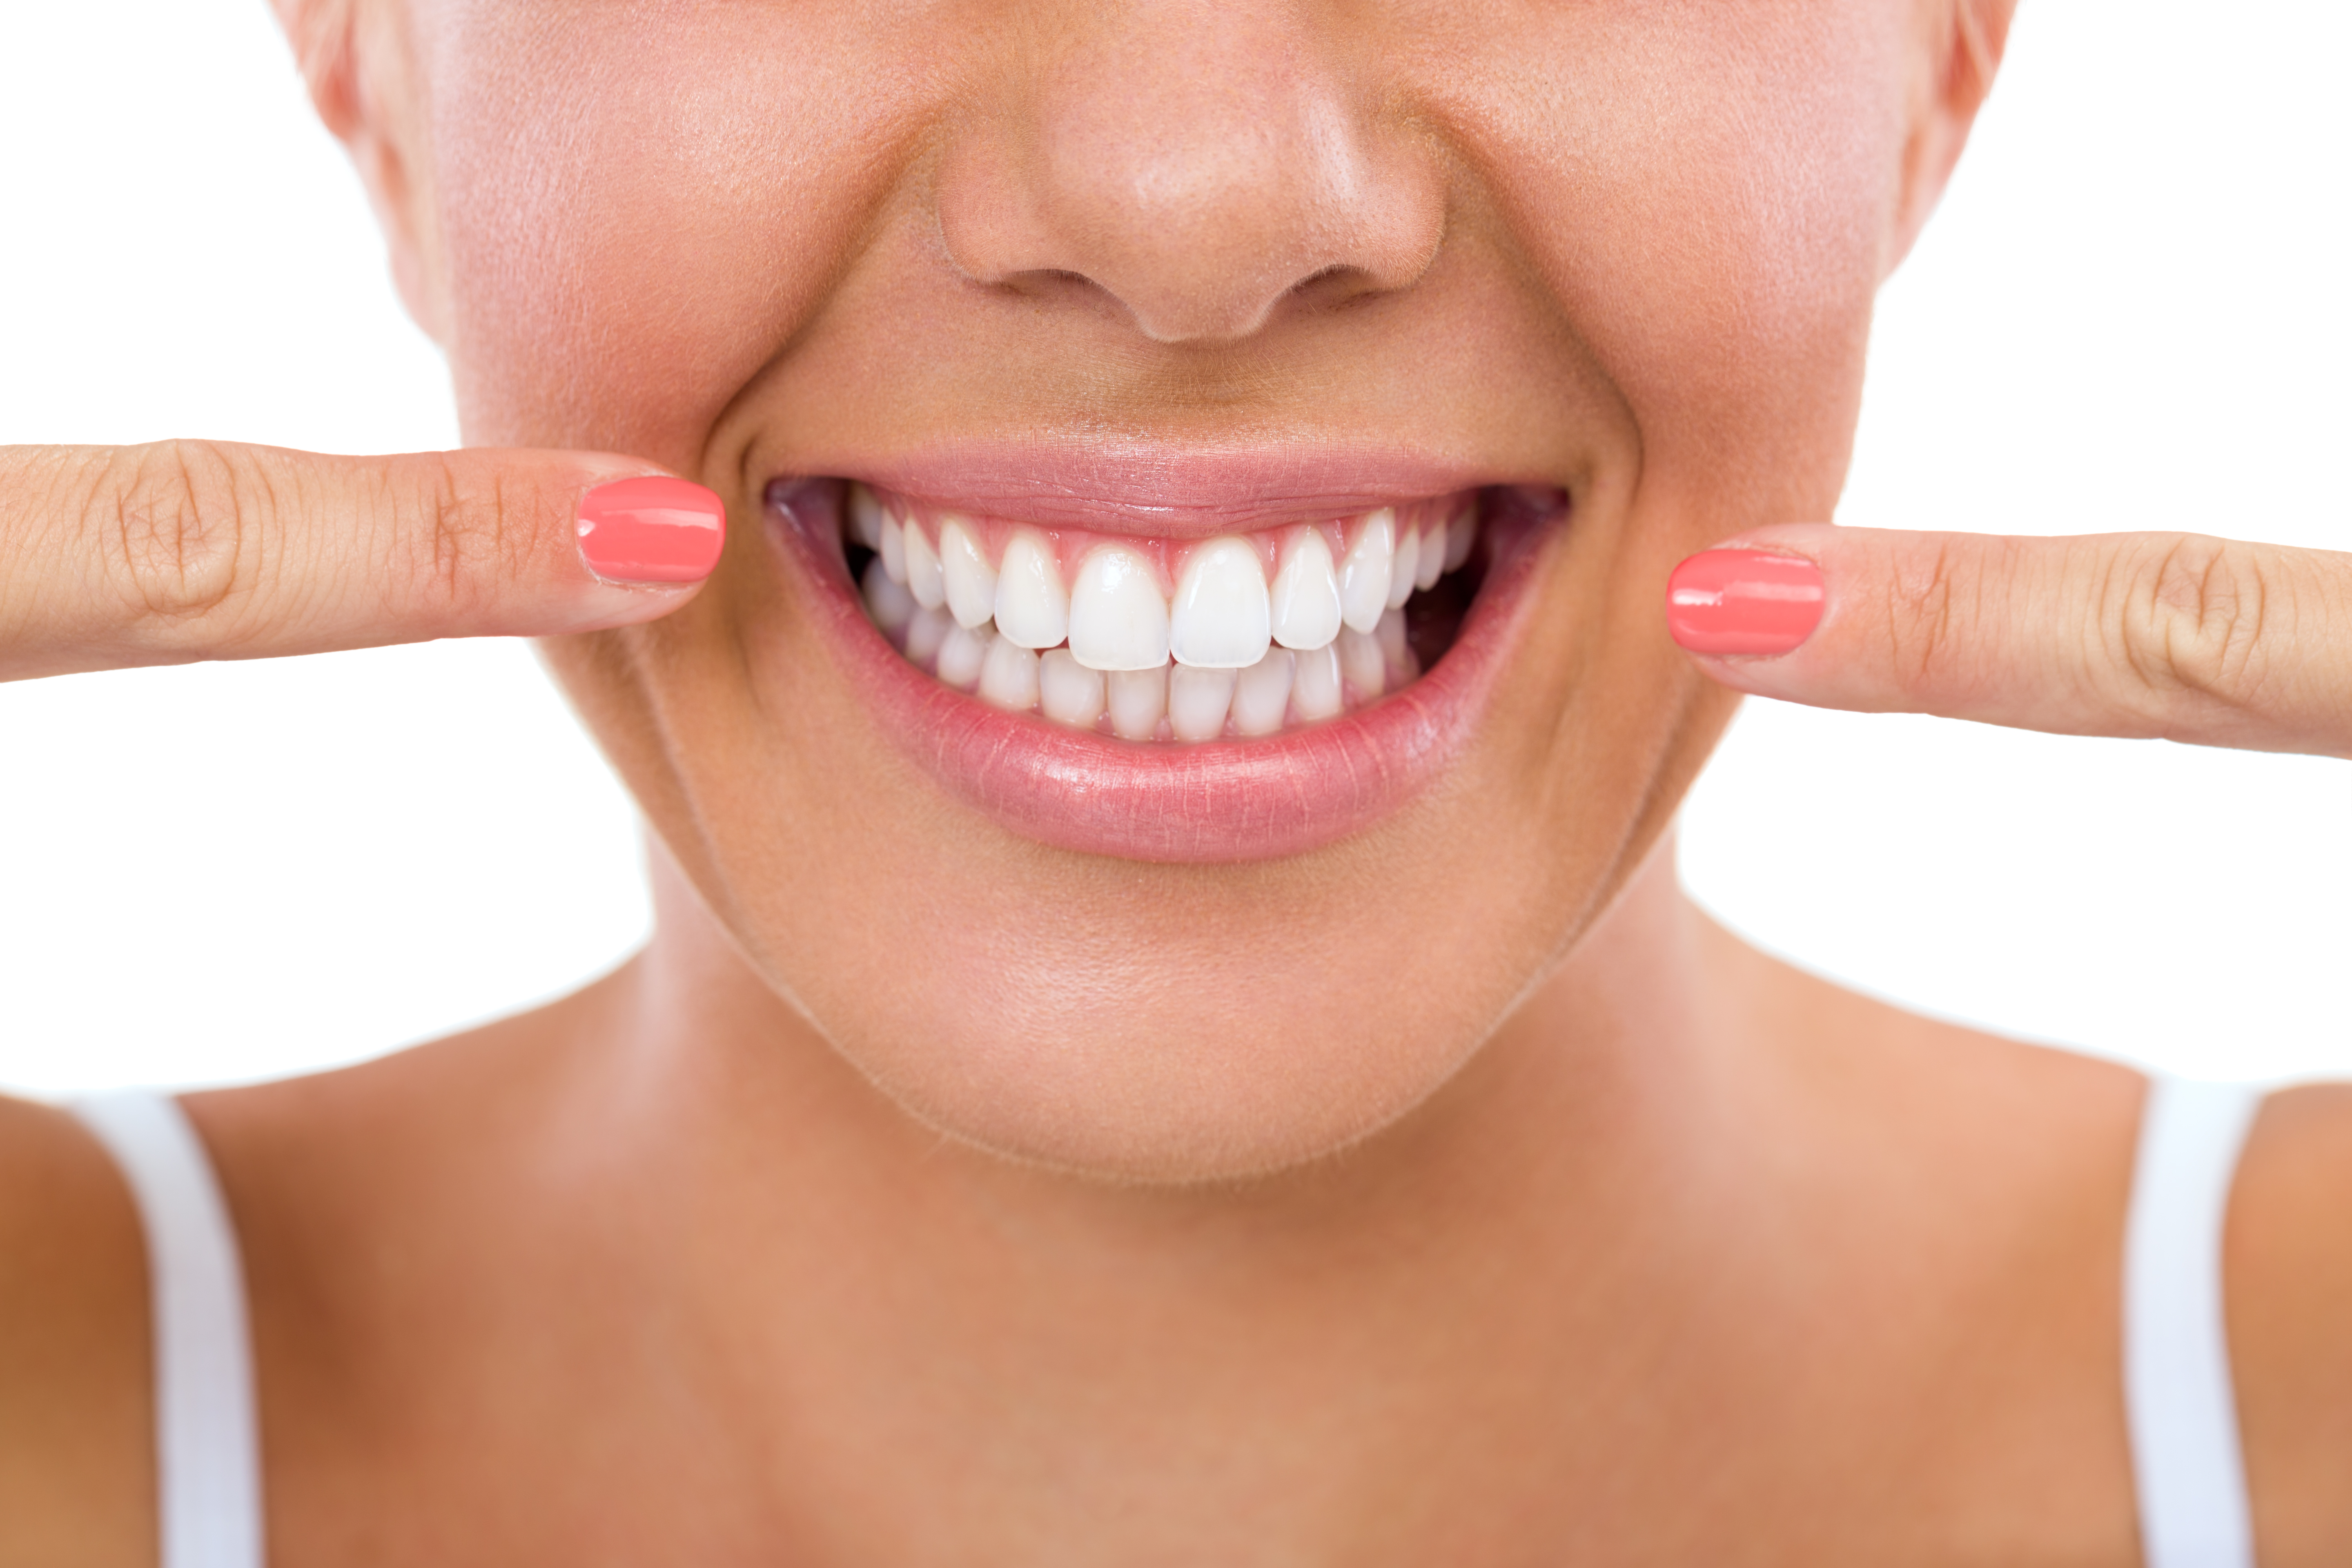 Dentures can be made to blend in with the rest of your smile.